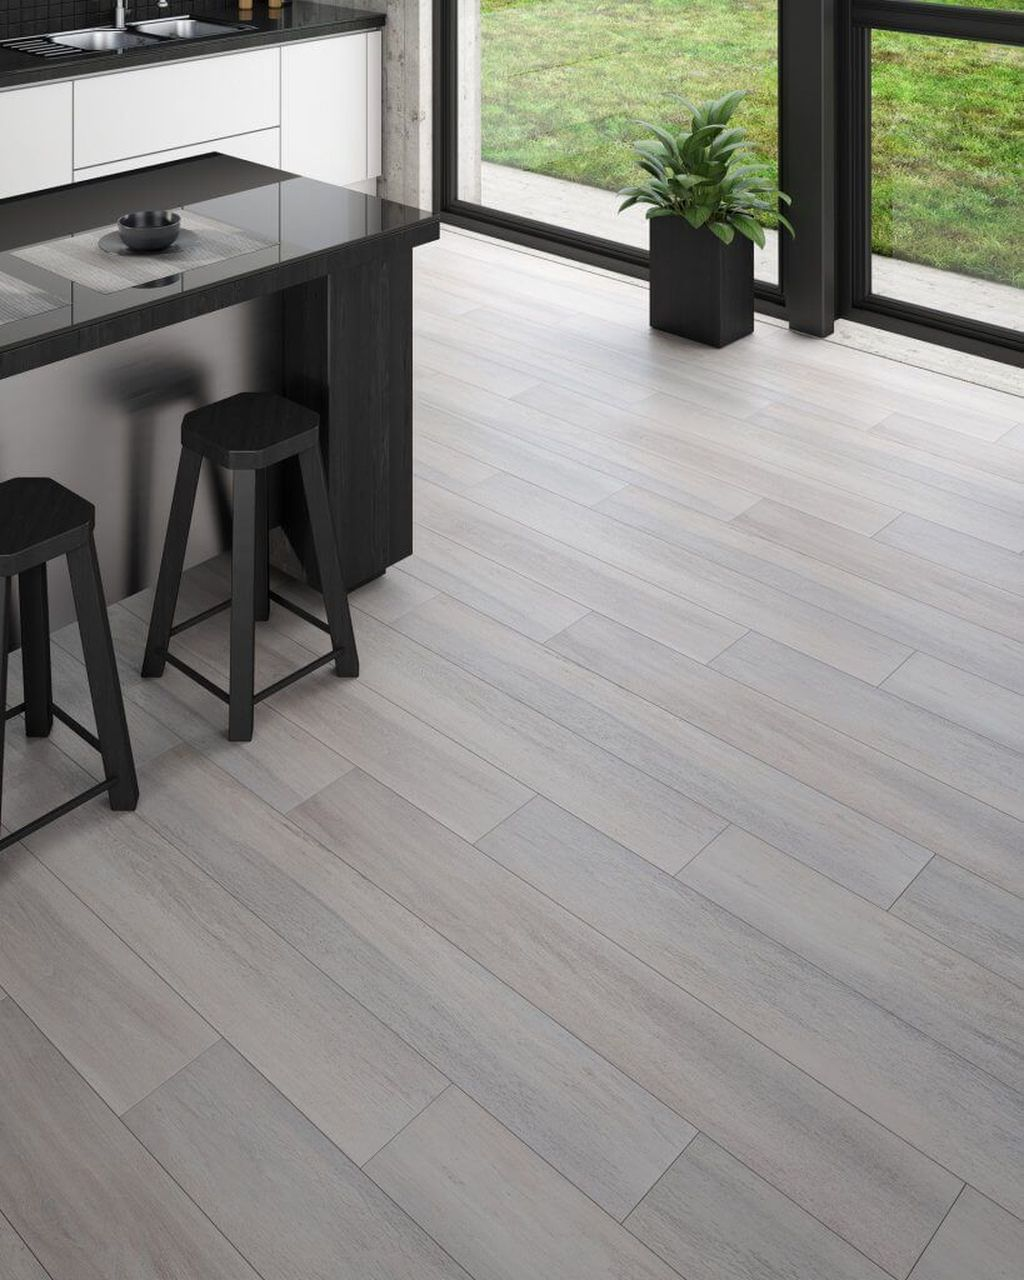 Awesome Wooden Tiles Flooring Ideas 14